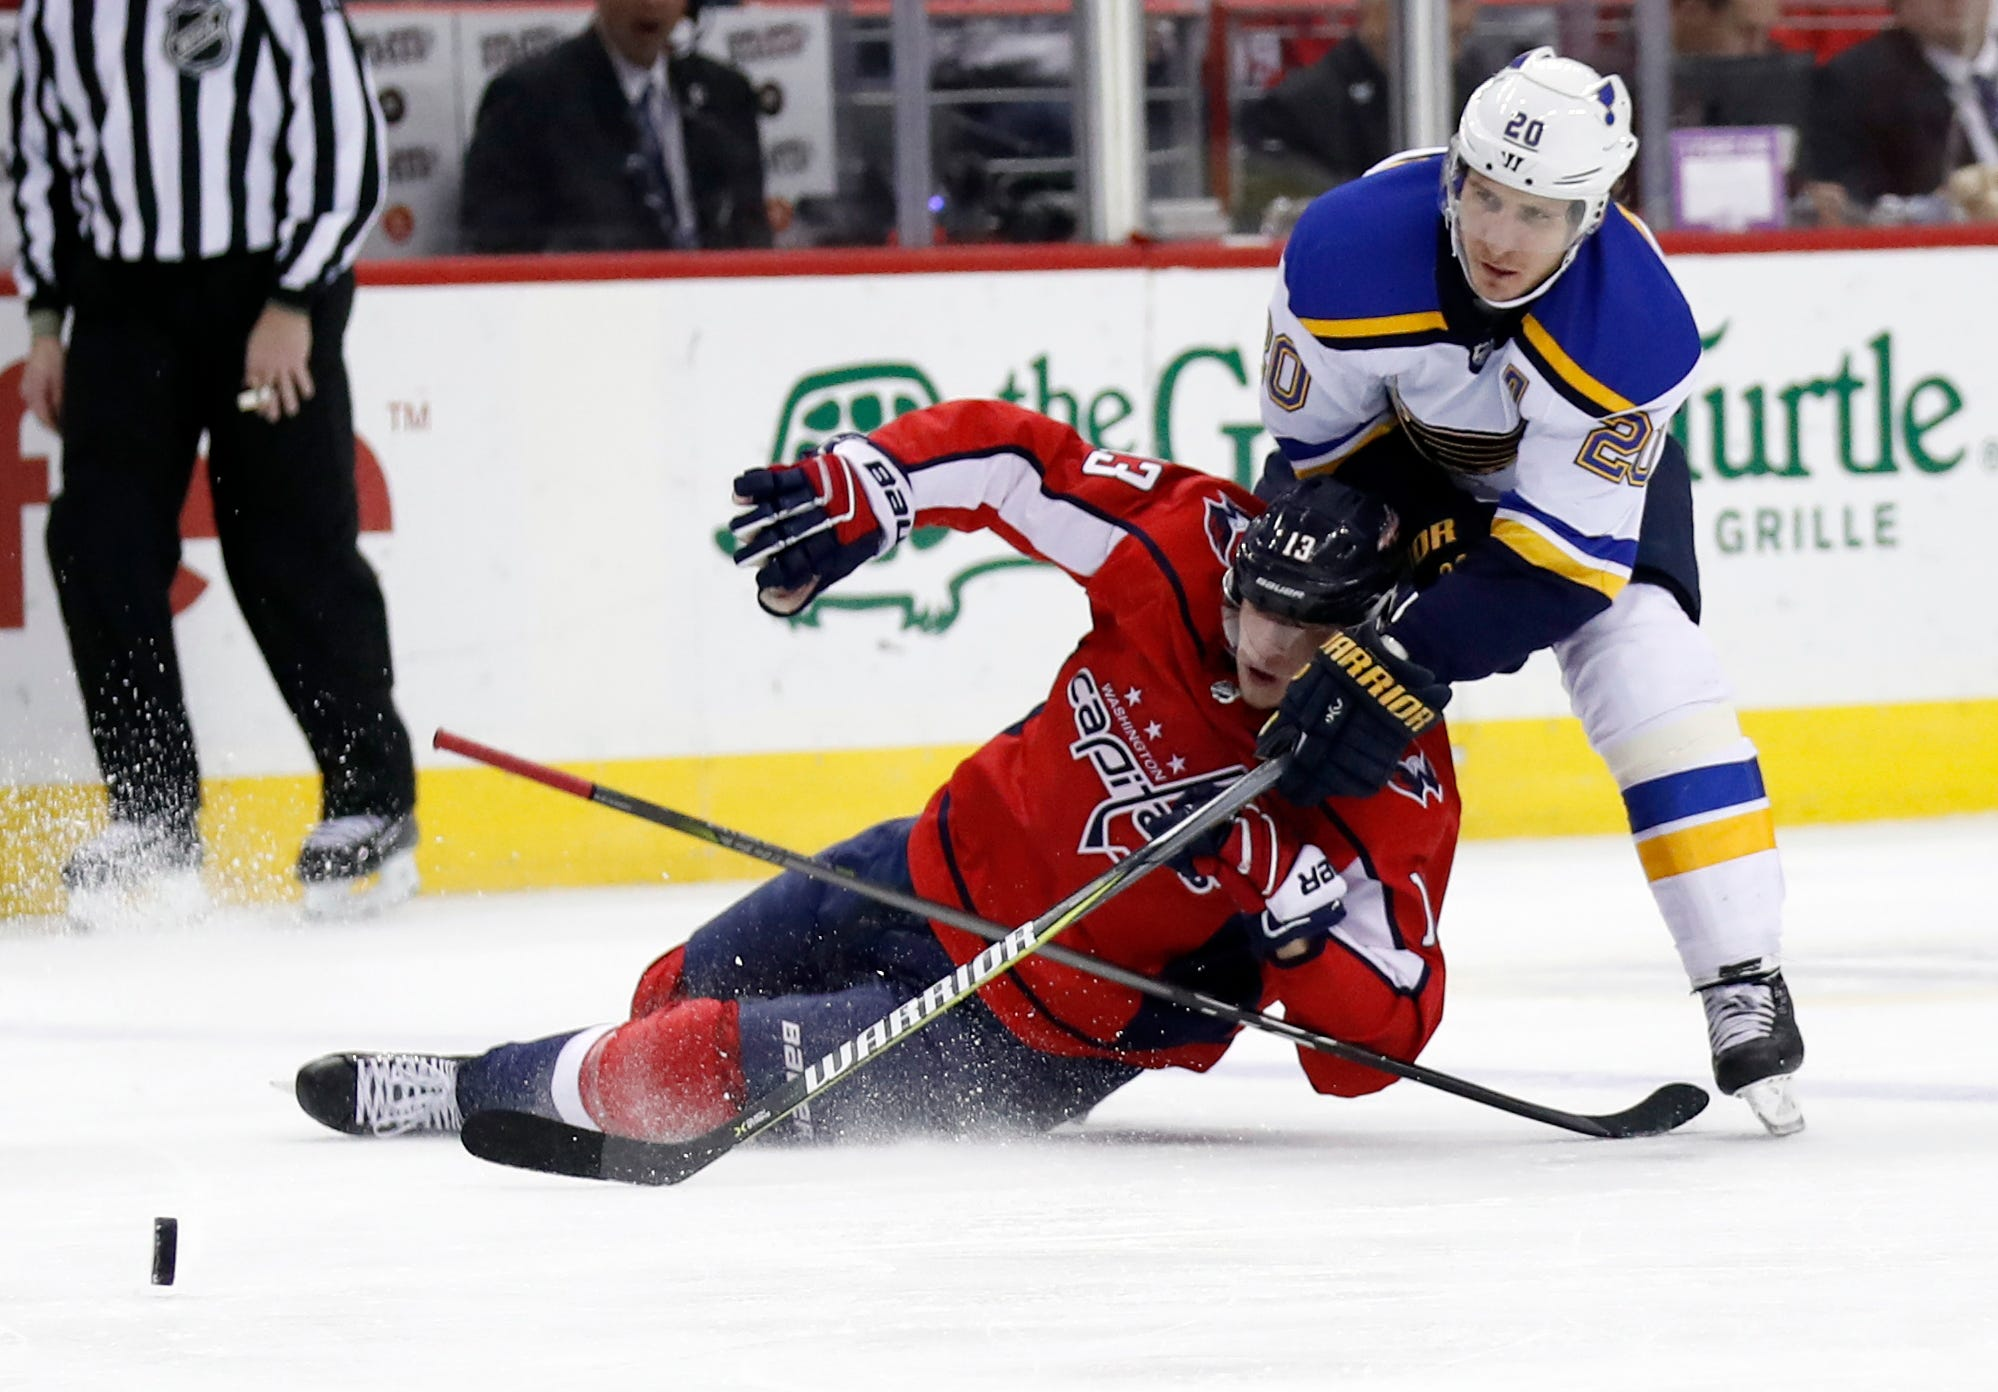 Backstrom, Ovechkin power Capitals past Blues, 4-3 in OT